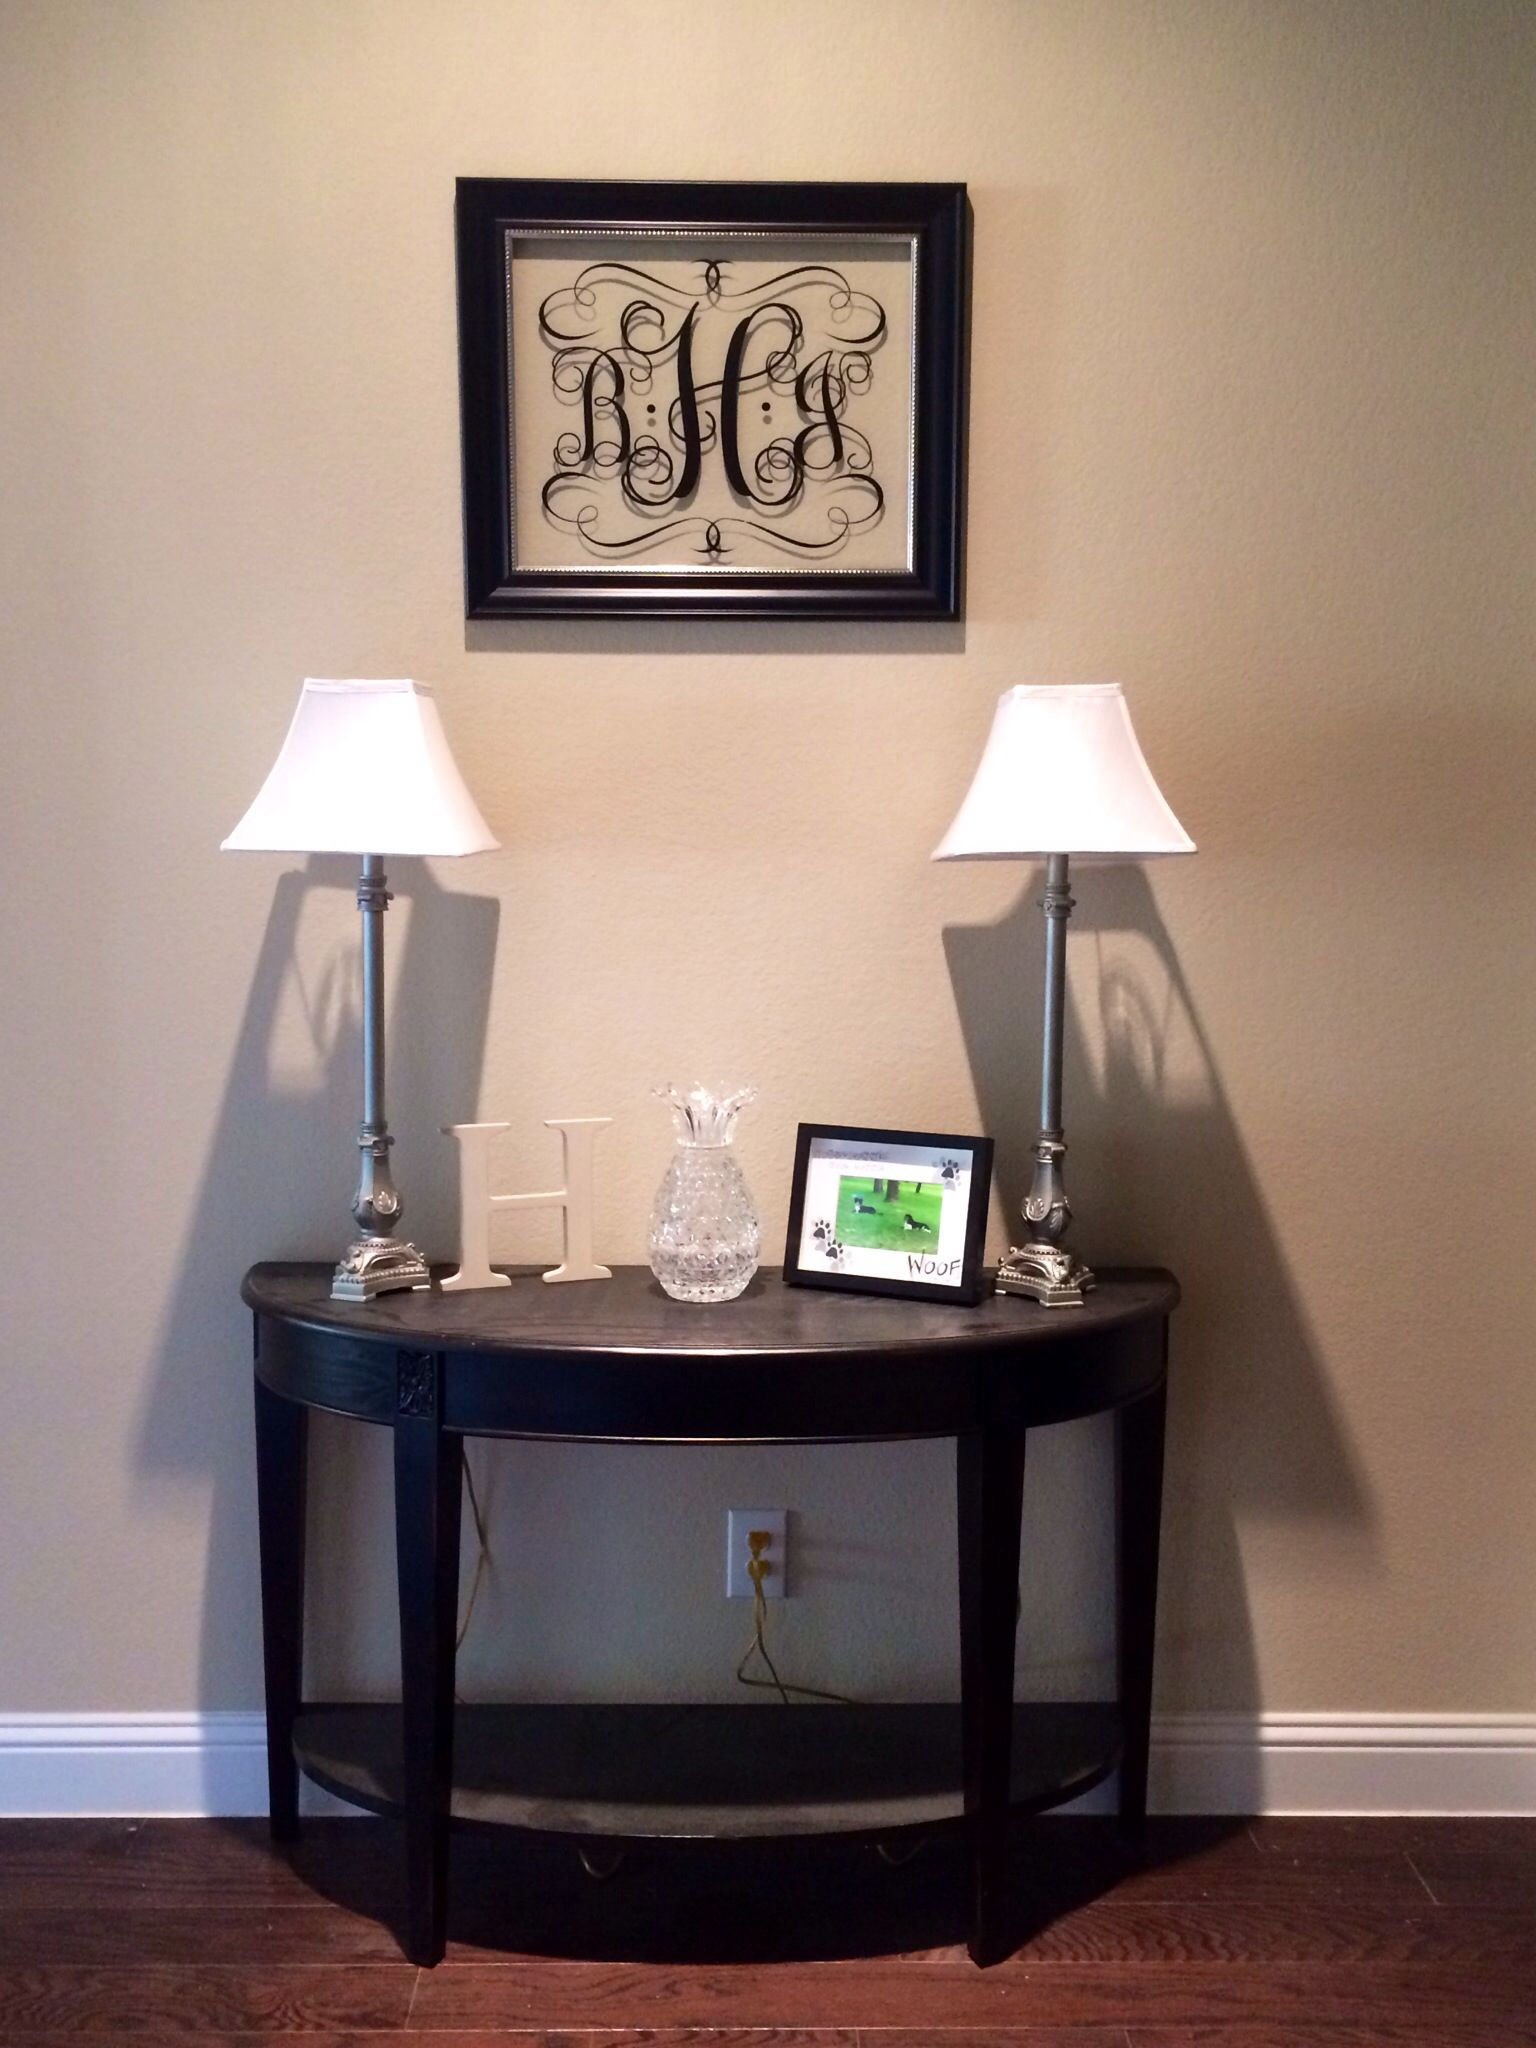 Entryway Table And Frame From Hobby Lobby Decal From